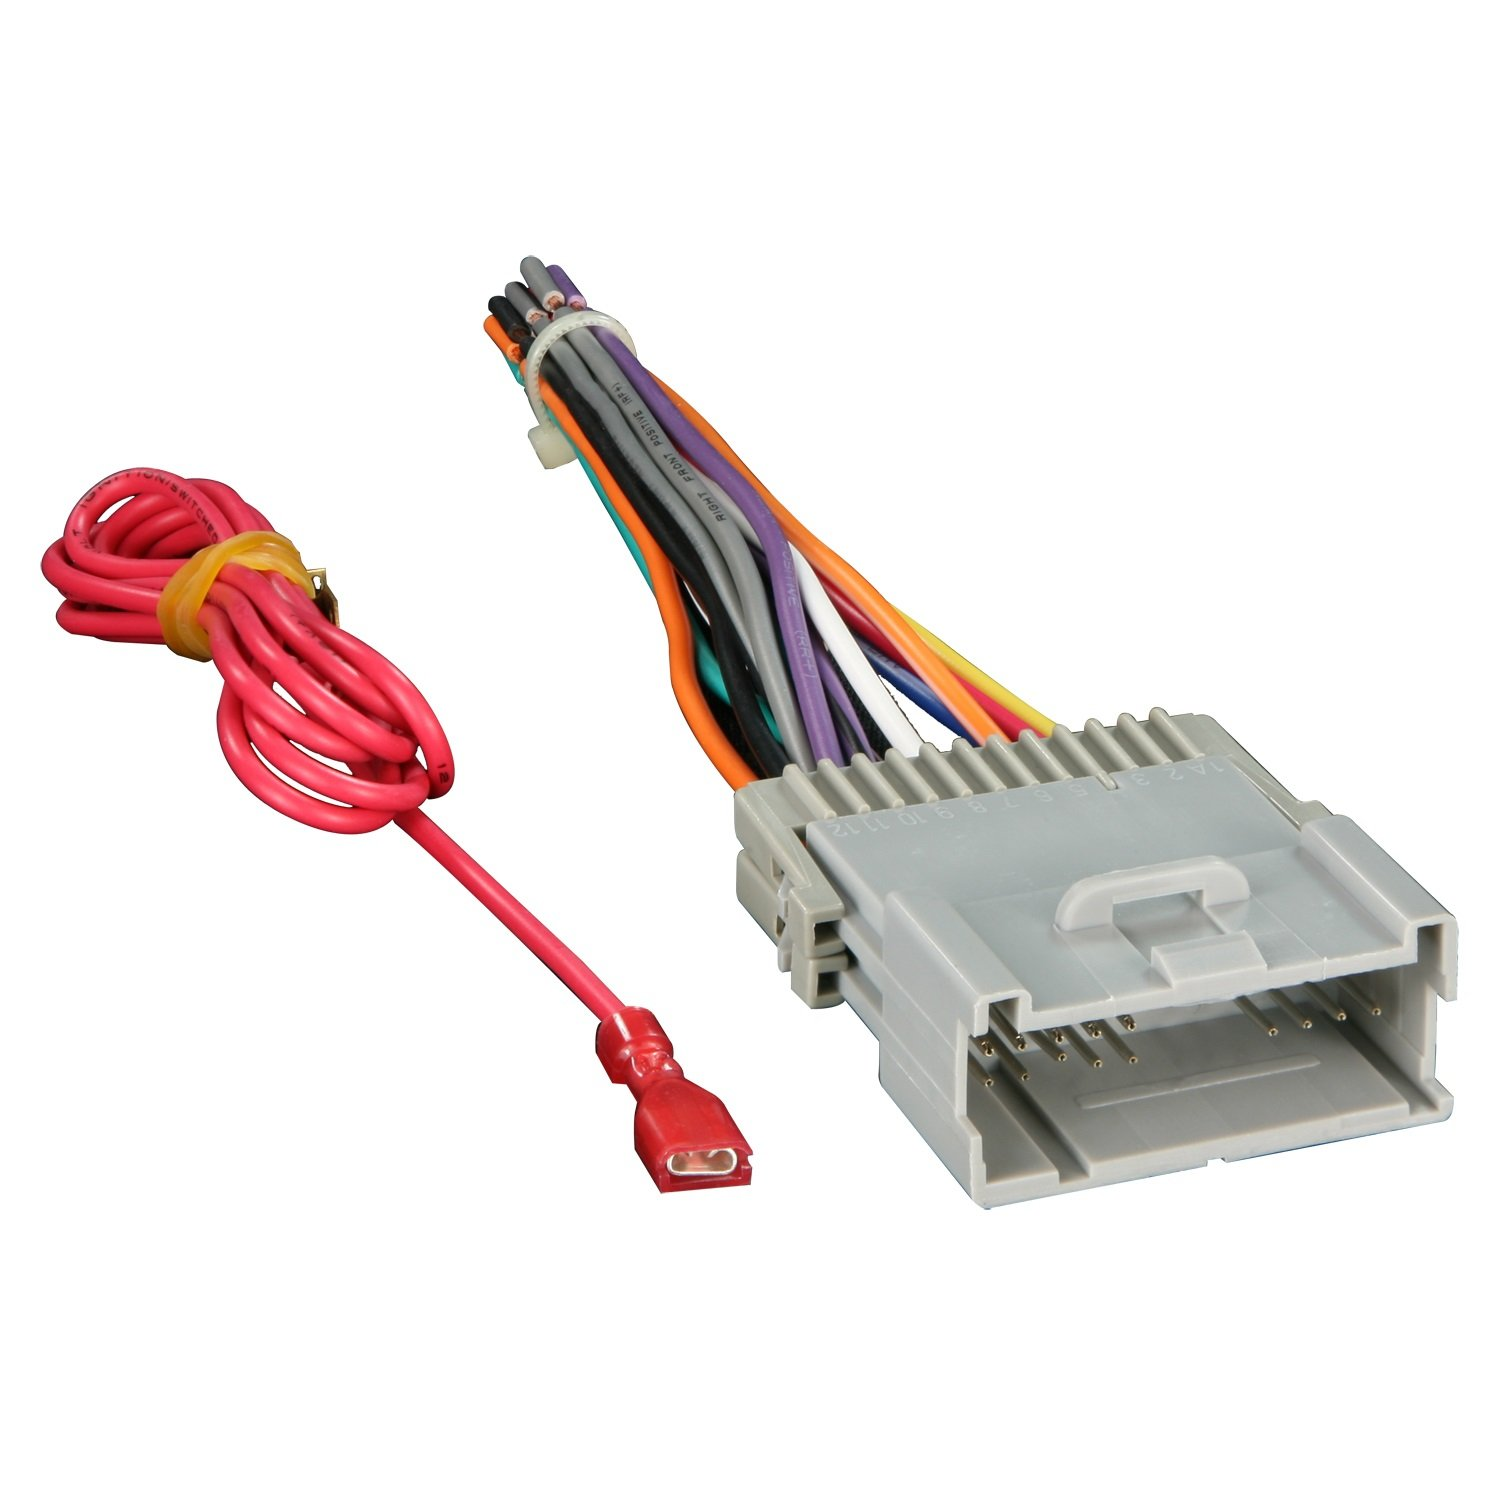 61eewxp9orL._SL1500_ amazon com metra 70 2003 radio wiring harness for gm 98 08 what is a wiring harness at gsmx.co